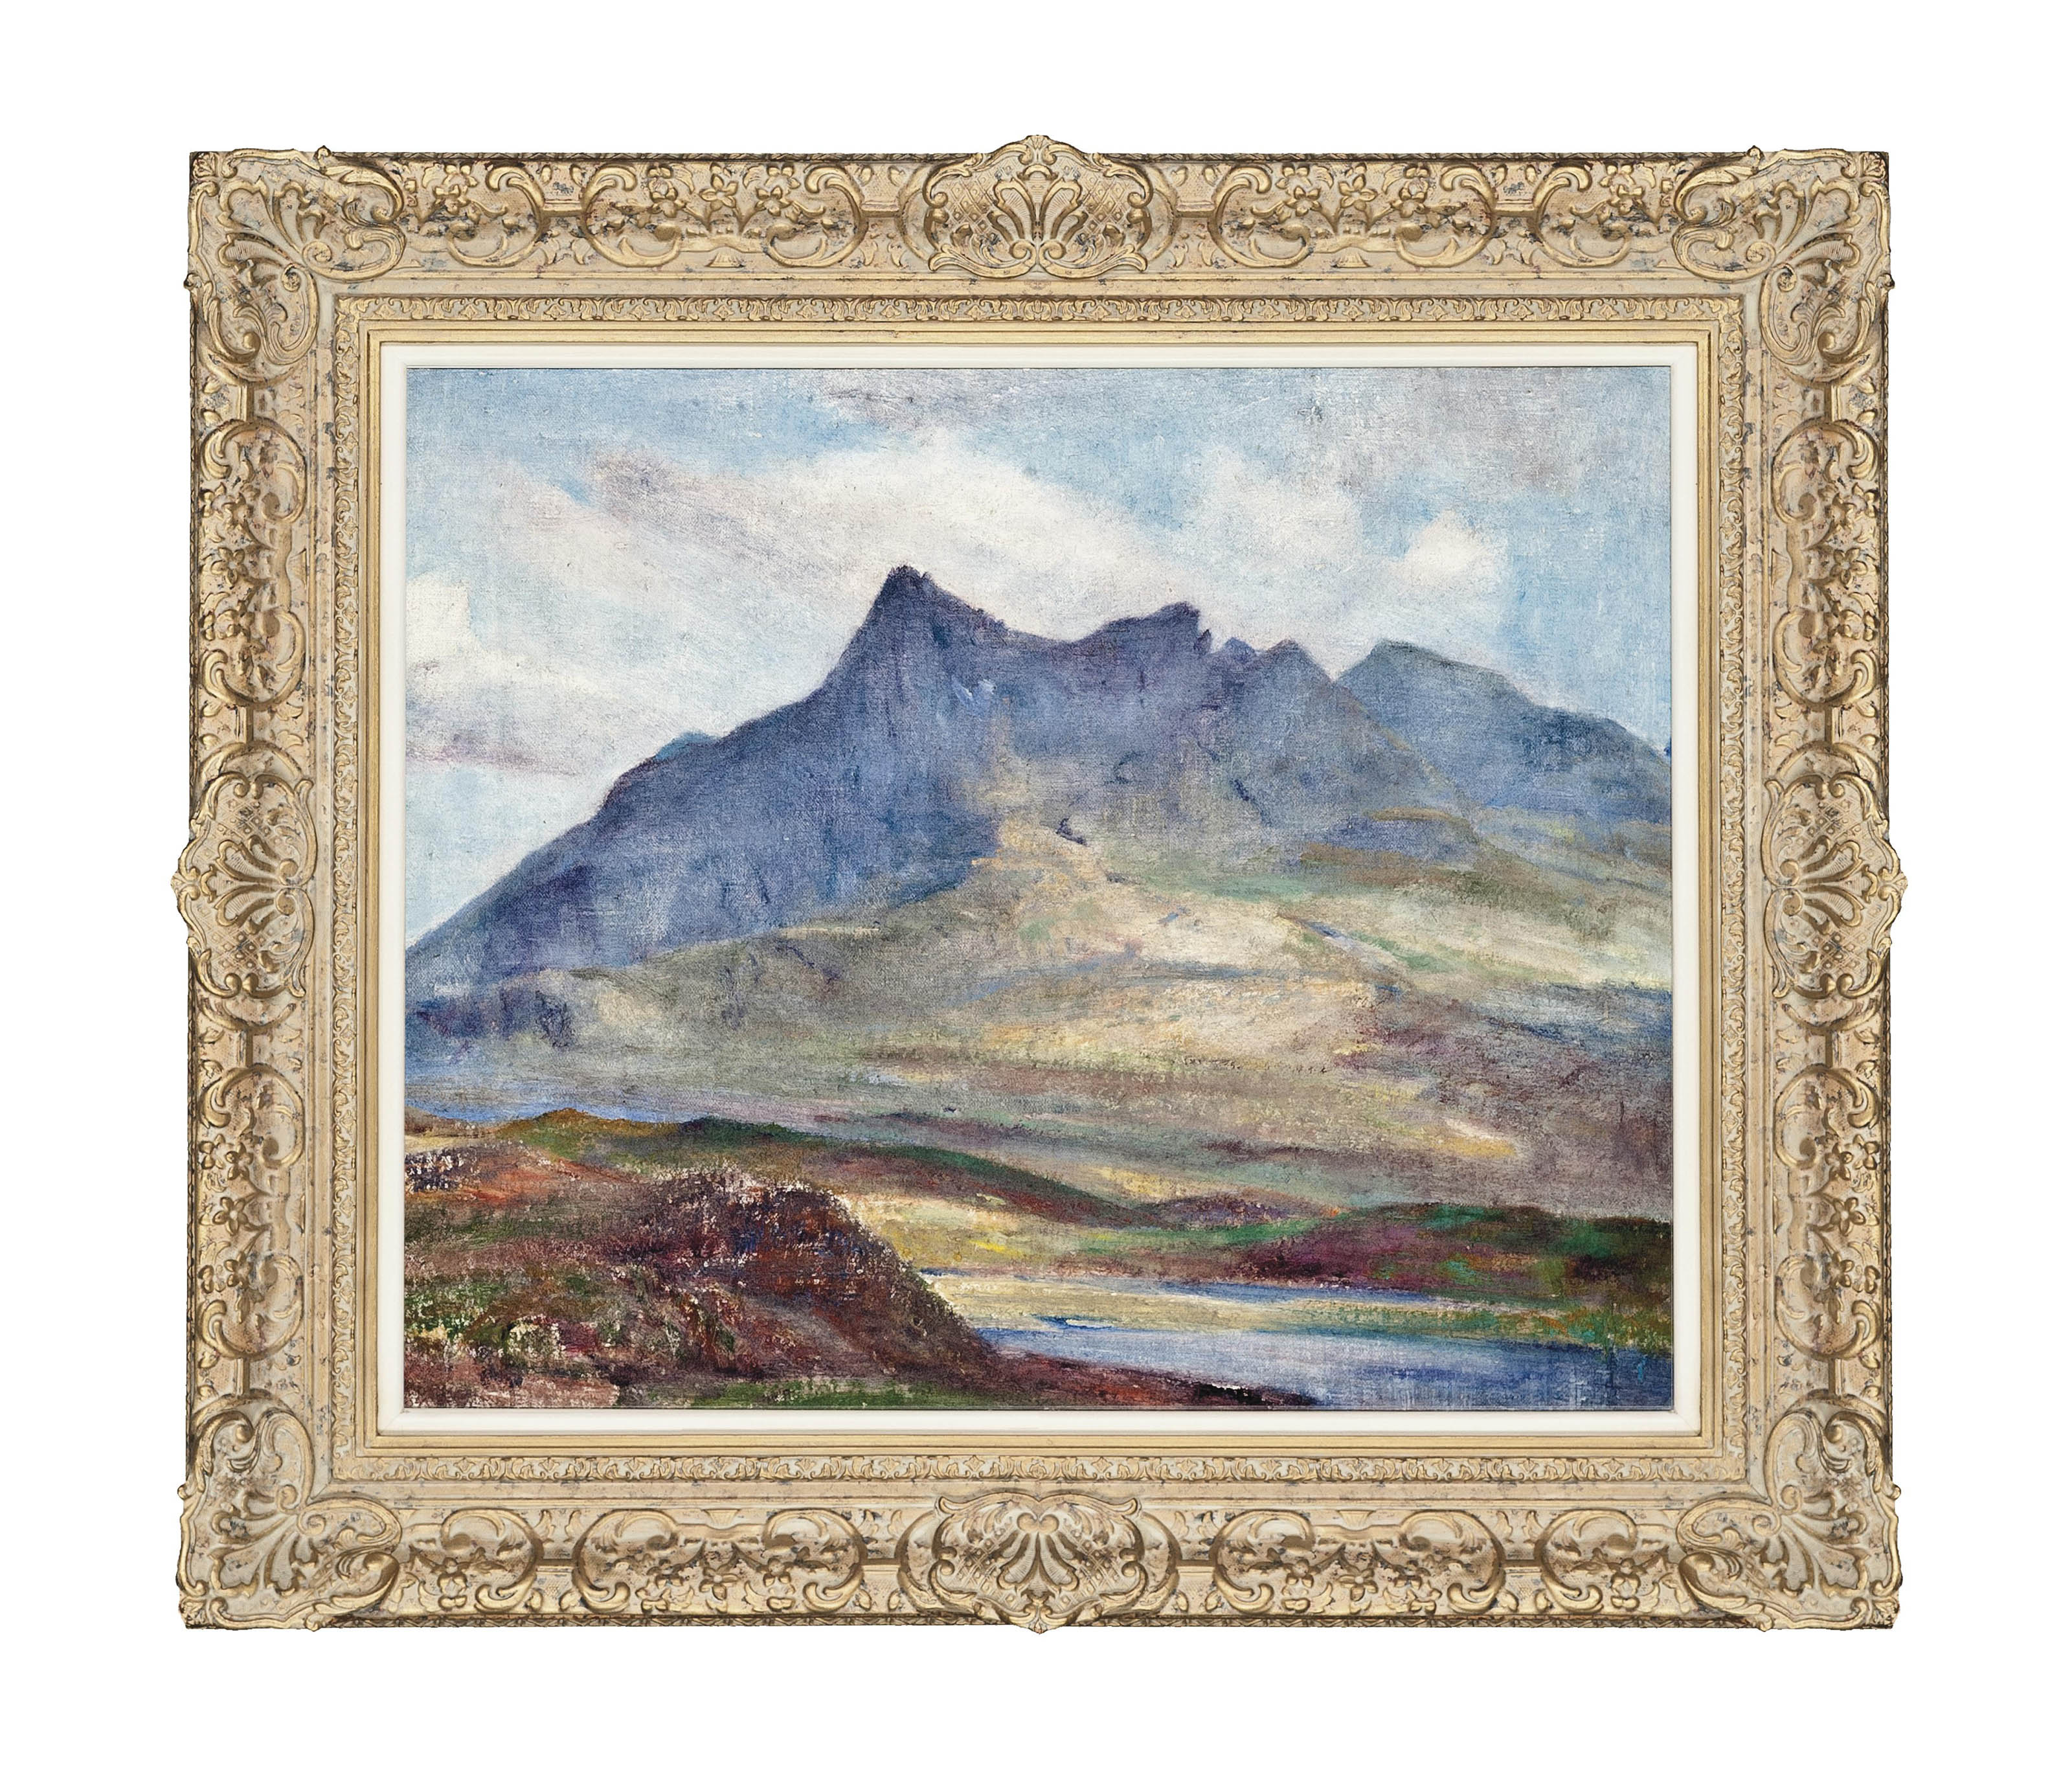 View of the Northern Cuillin, Skye